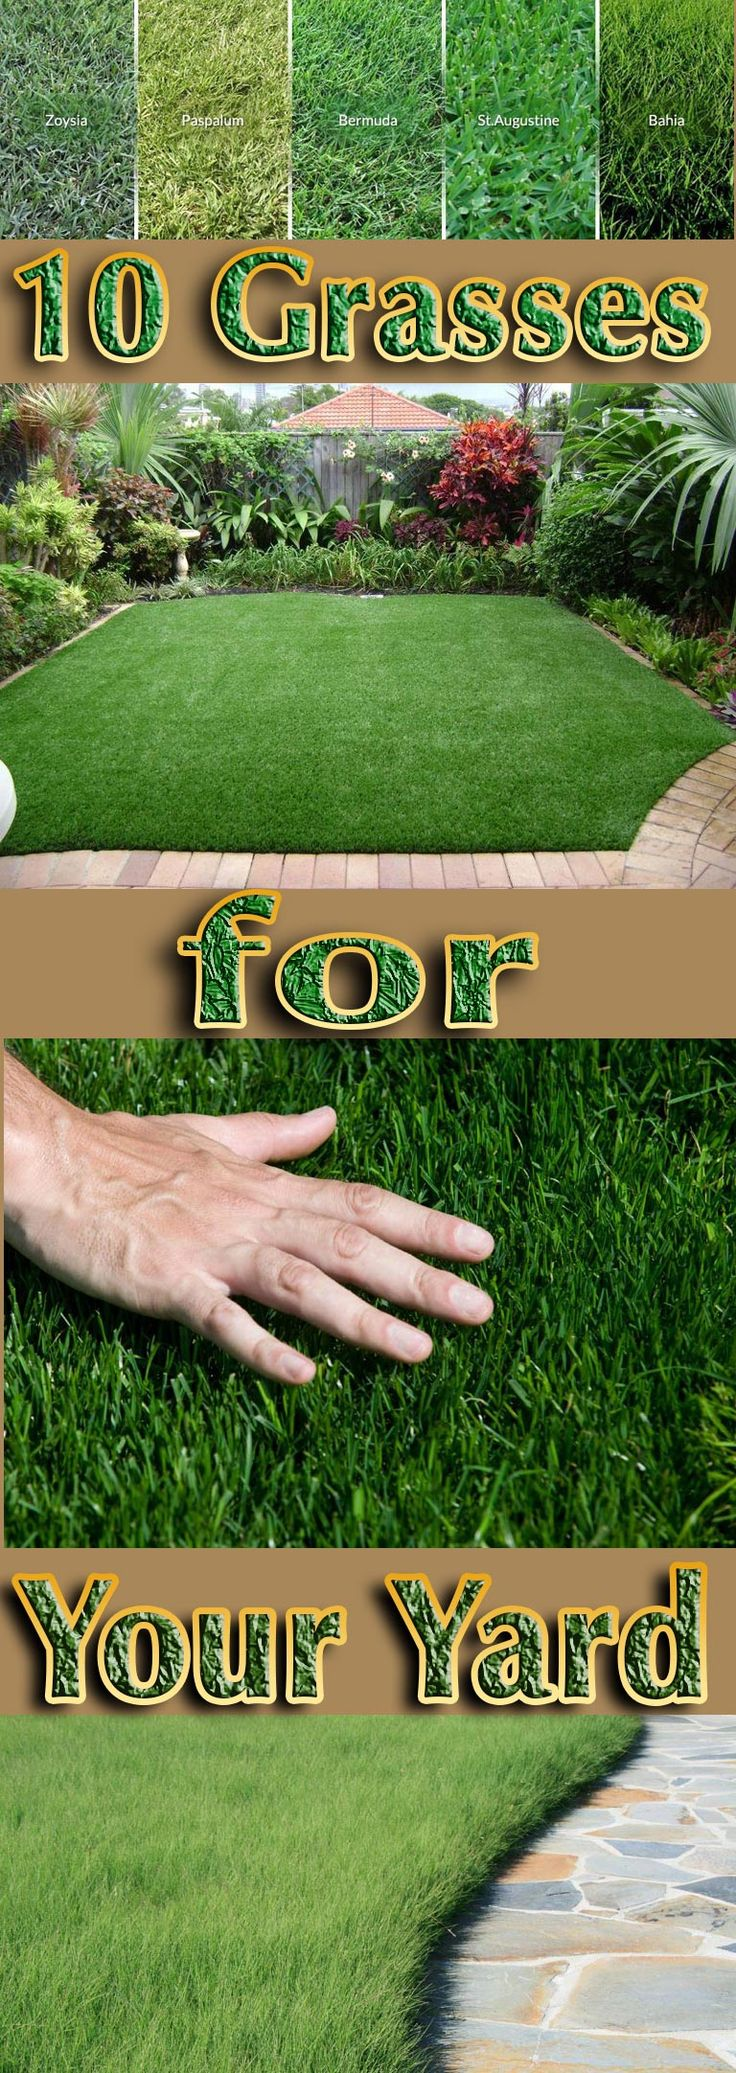 Best way to plant grass seed - 10 Grasses For Your Yard